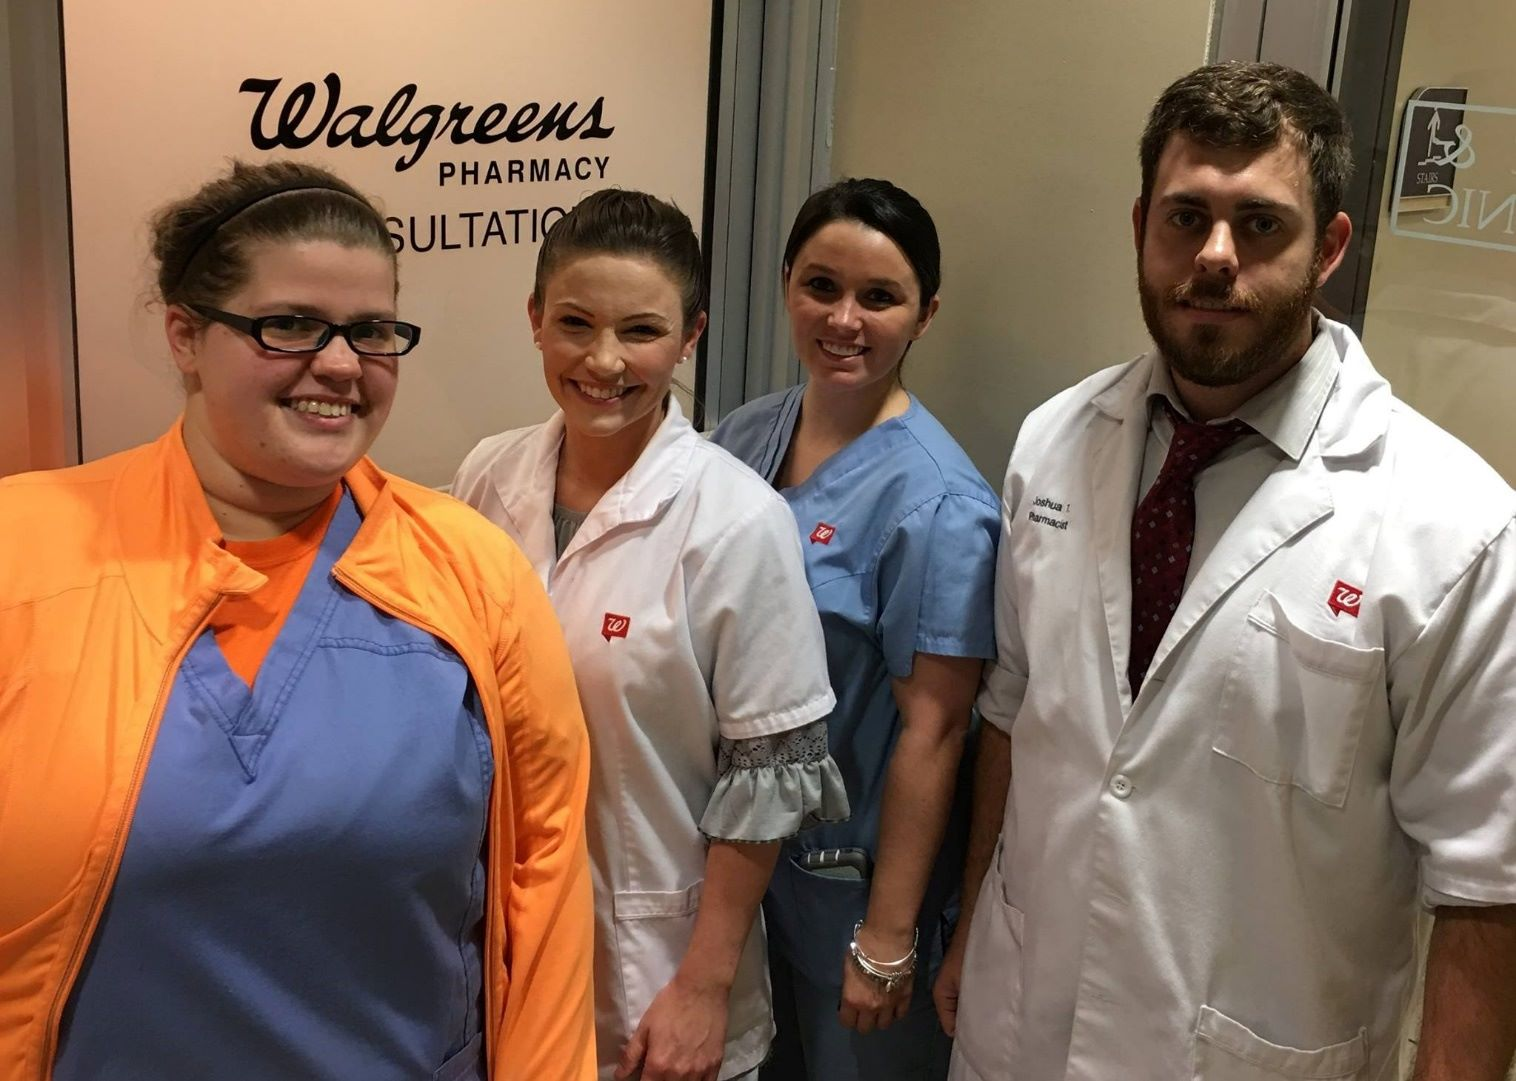 Walgreens pharmacy team support patients